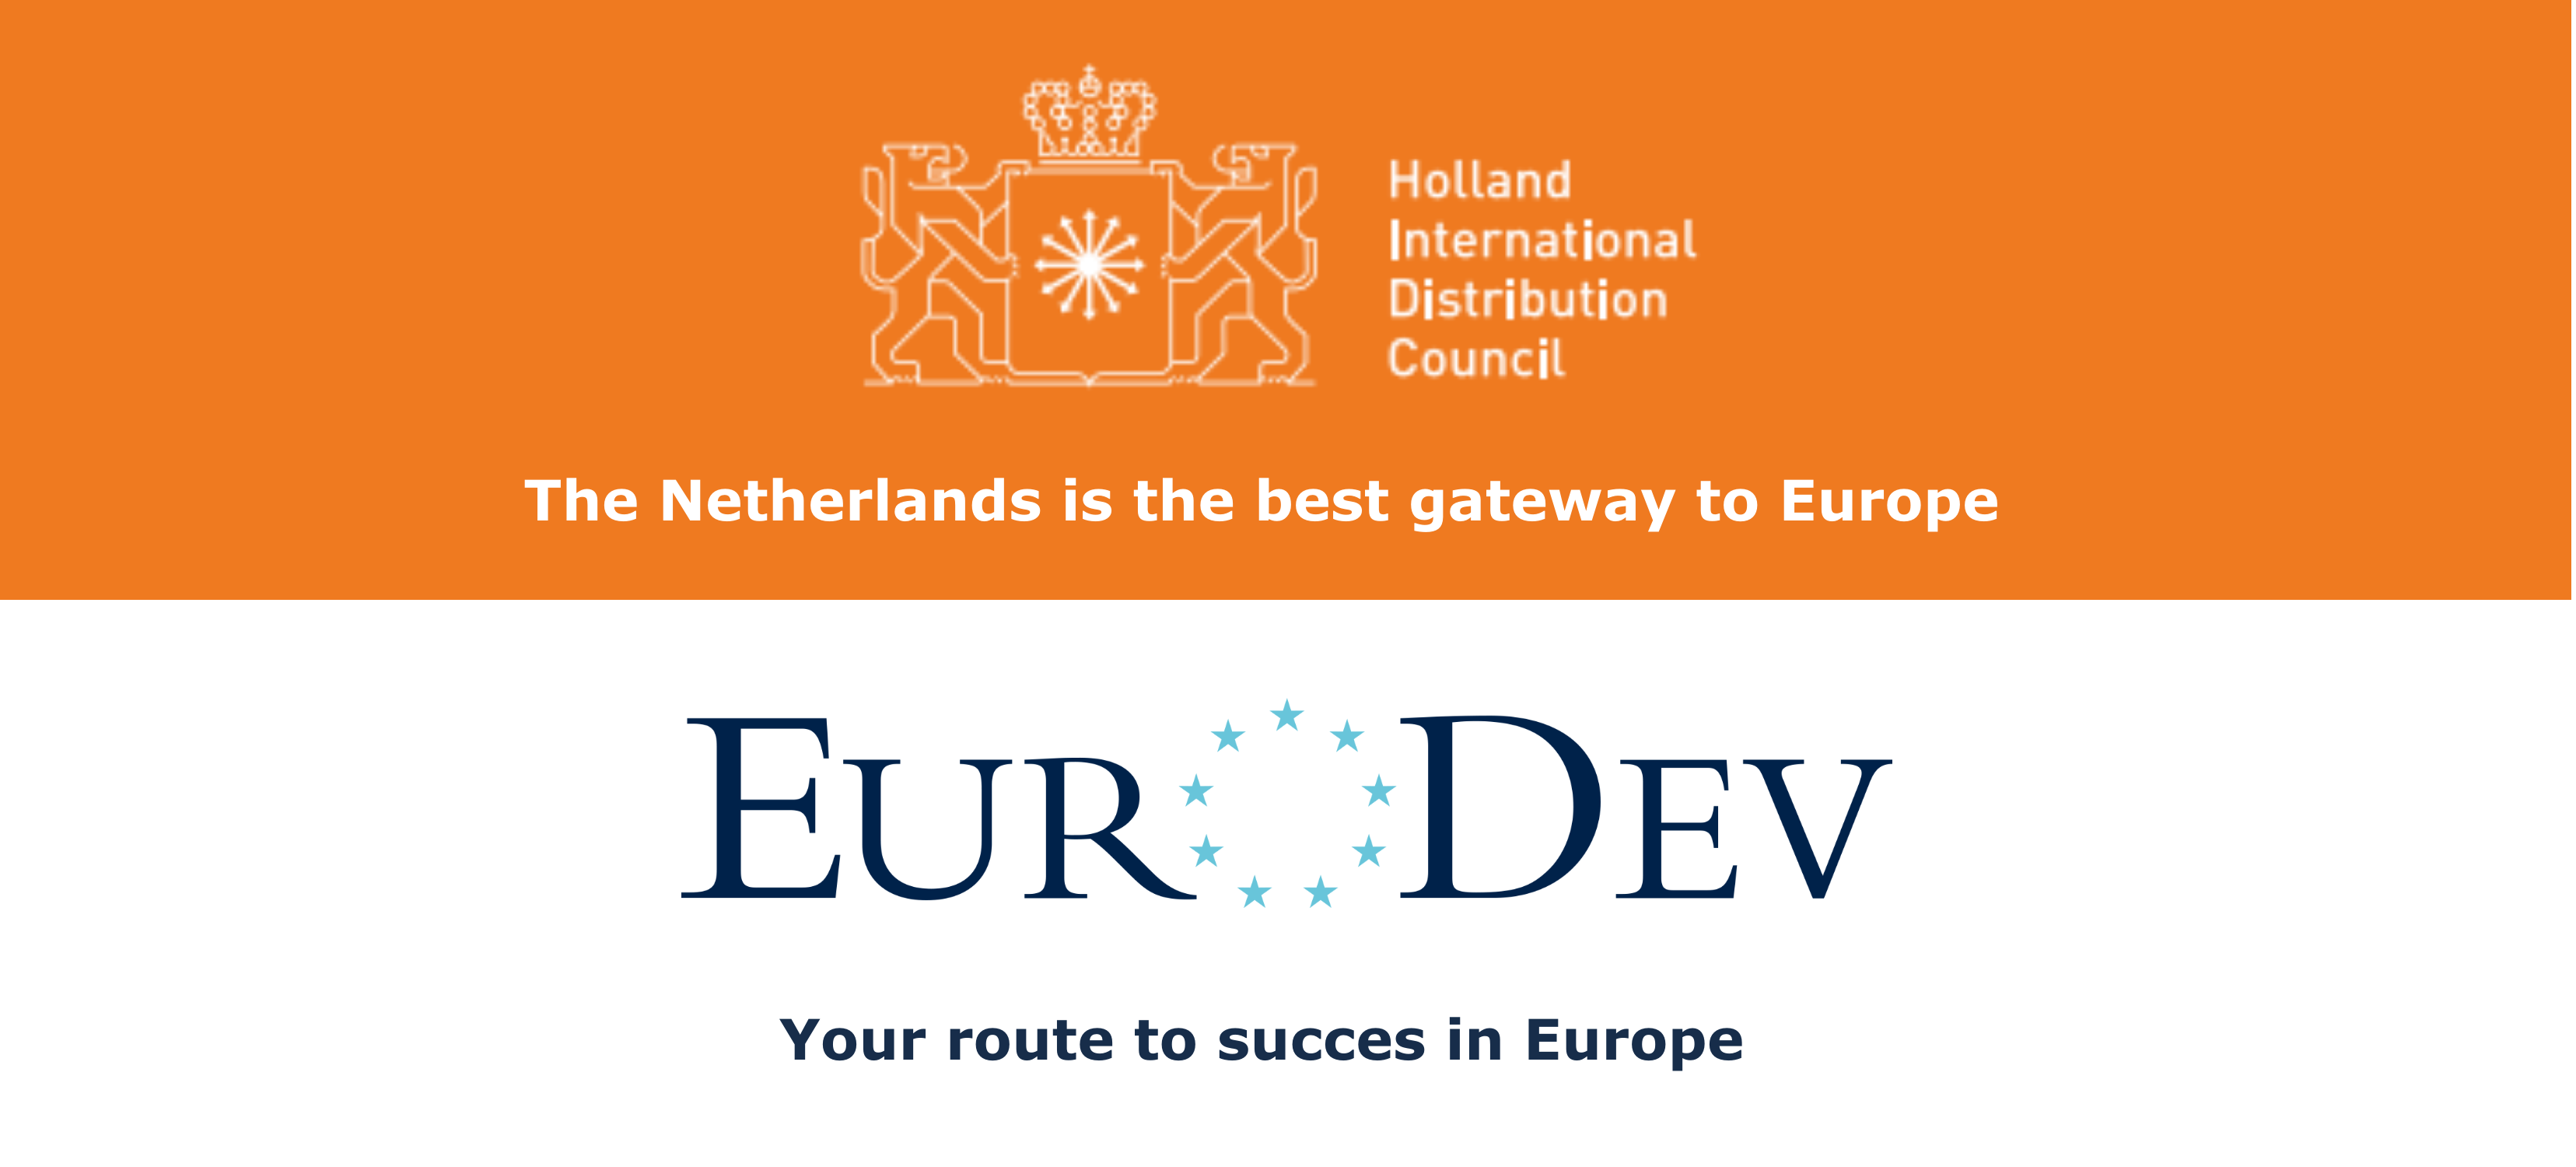 NDL HIDC EuroDev Webinar How to become successful in Europe as a North American manufacturer?